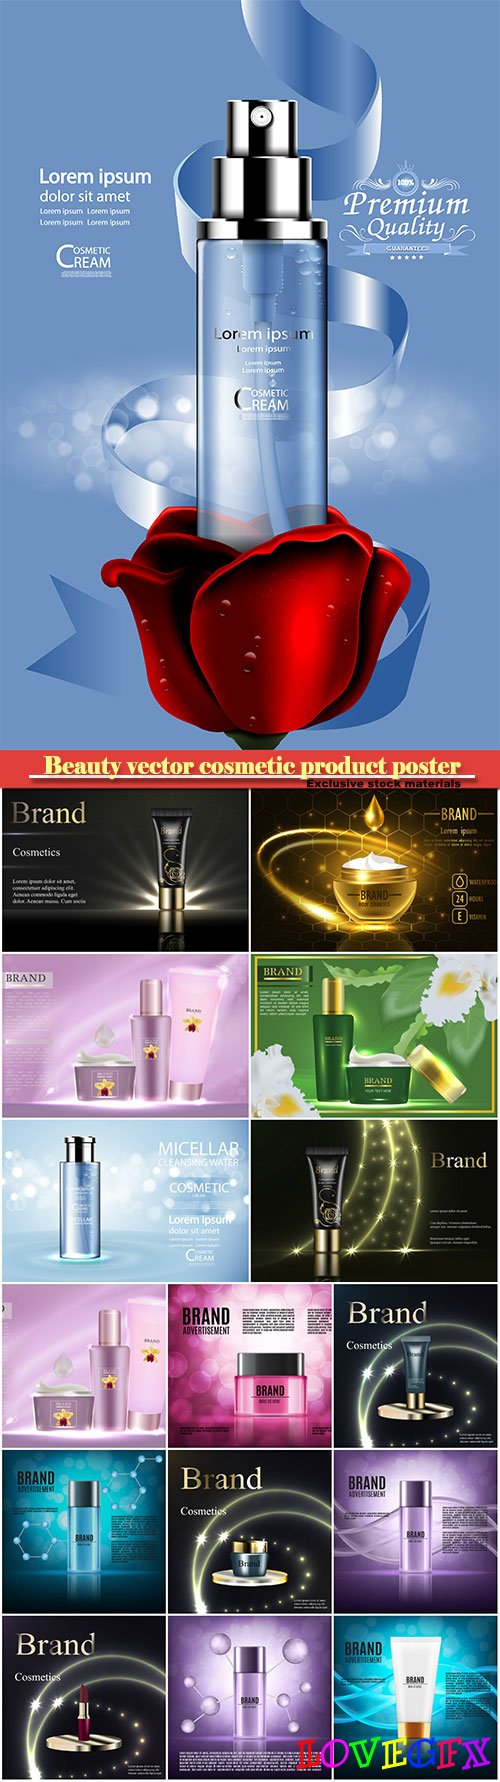 Beauty vector cosmetic product poster # 16